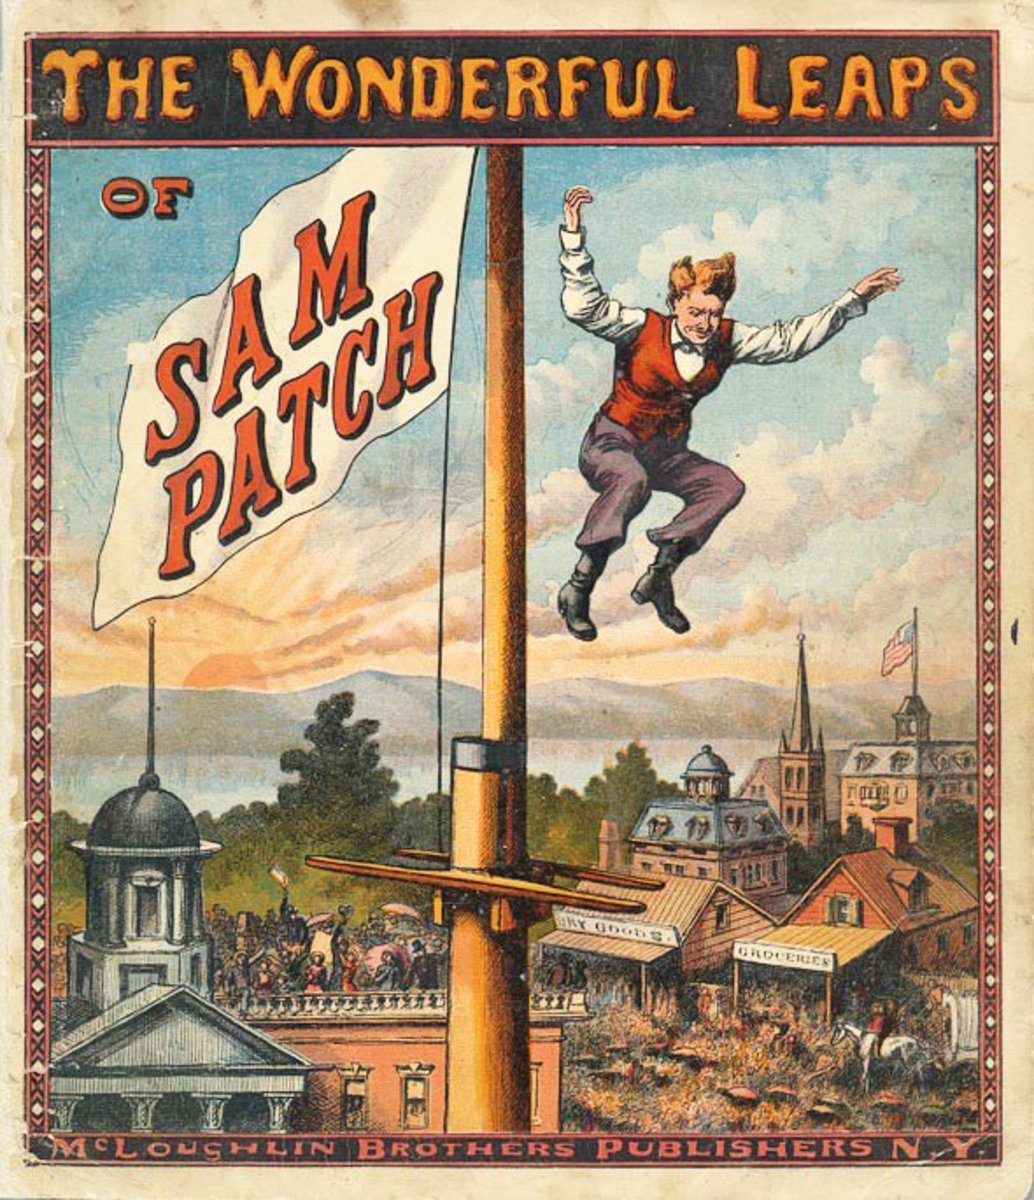 Cover illustration for The Wonderful Leaps of Sam Patch, published by McLaughlin Brothers, 1870